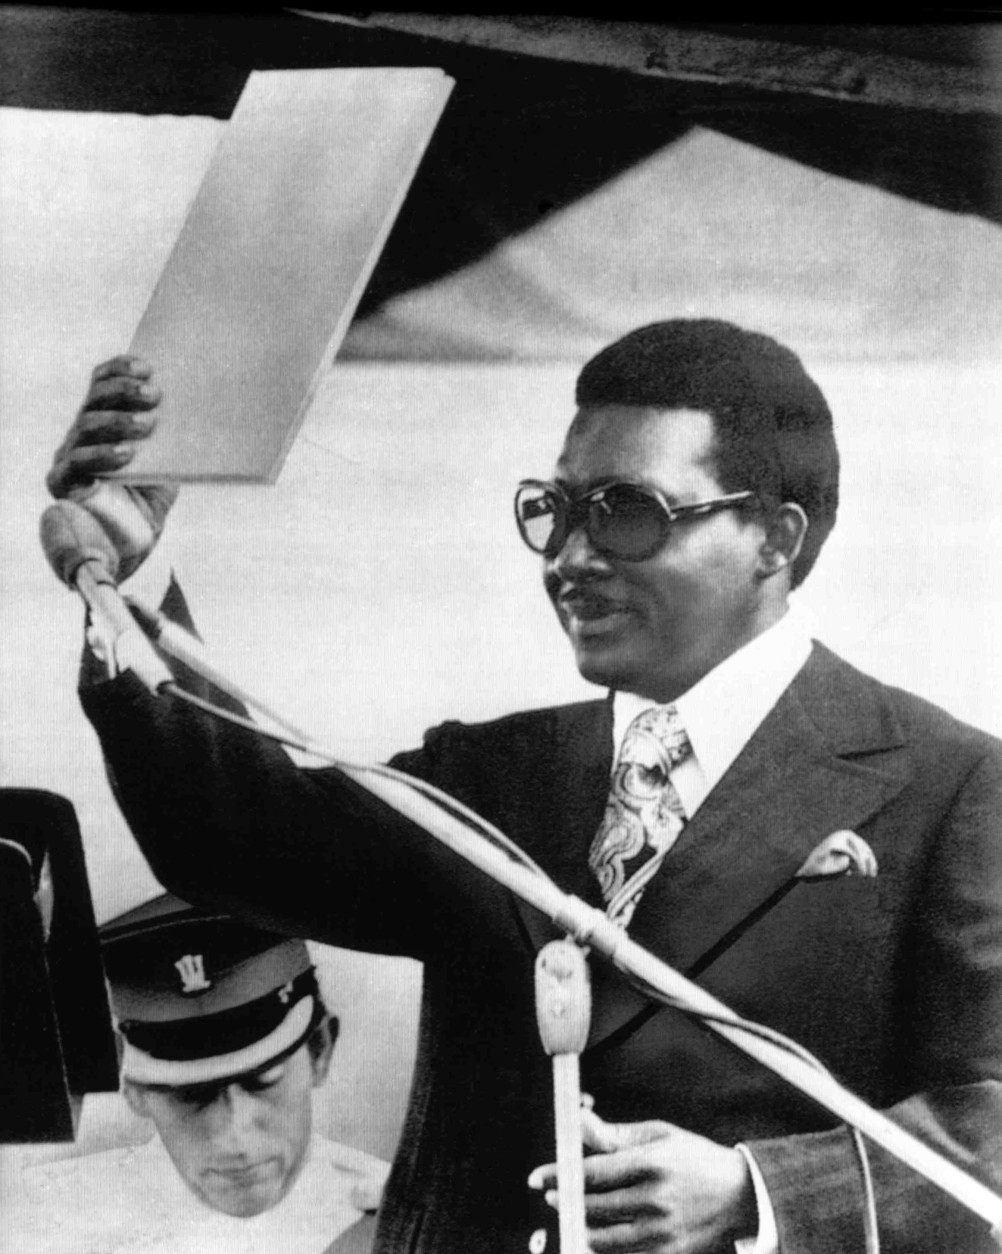 Bahamas Prime Minister Lynden O. Pindling holds the constitutional papers symbolizing freedom from three centuries of British Colonial rule during ceremonies marking his nation's first day as an independent state, in Nassau, on July 10, 1973. Pindling received the papers from Britain's Prince Charles, seen lower left. (AP Photo)